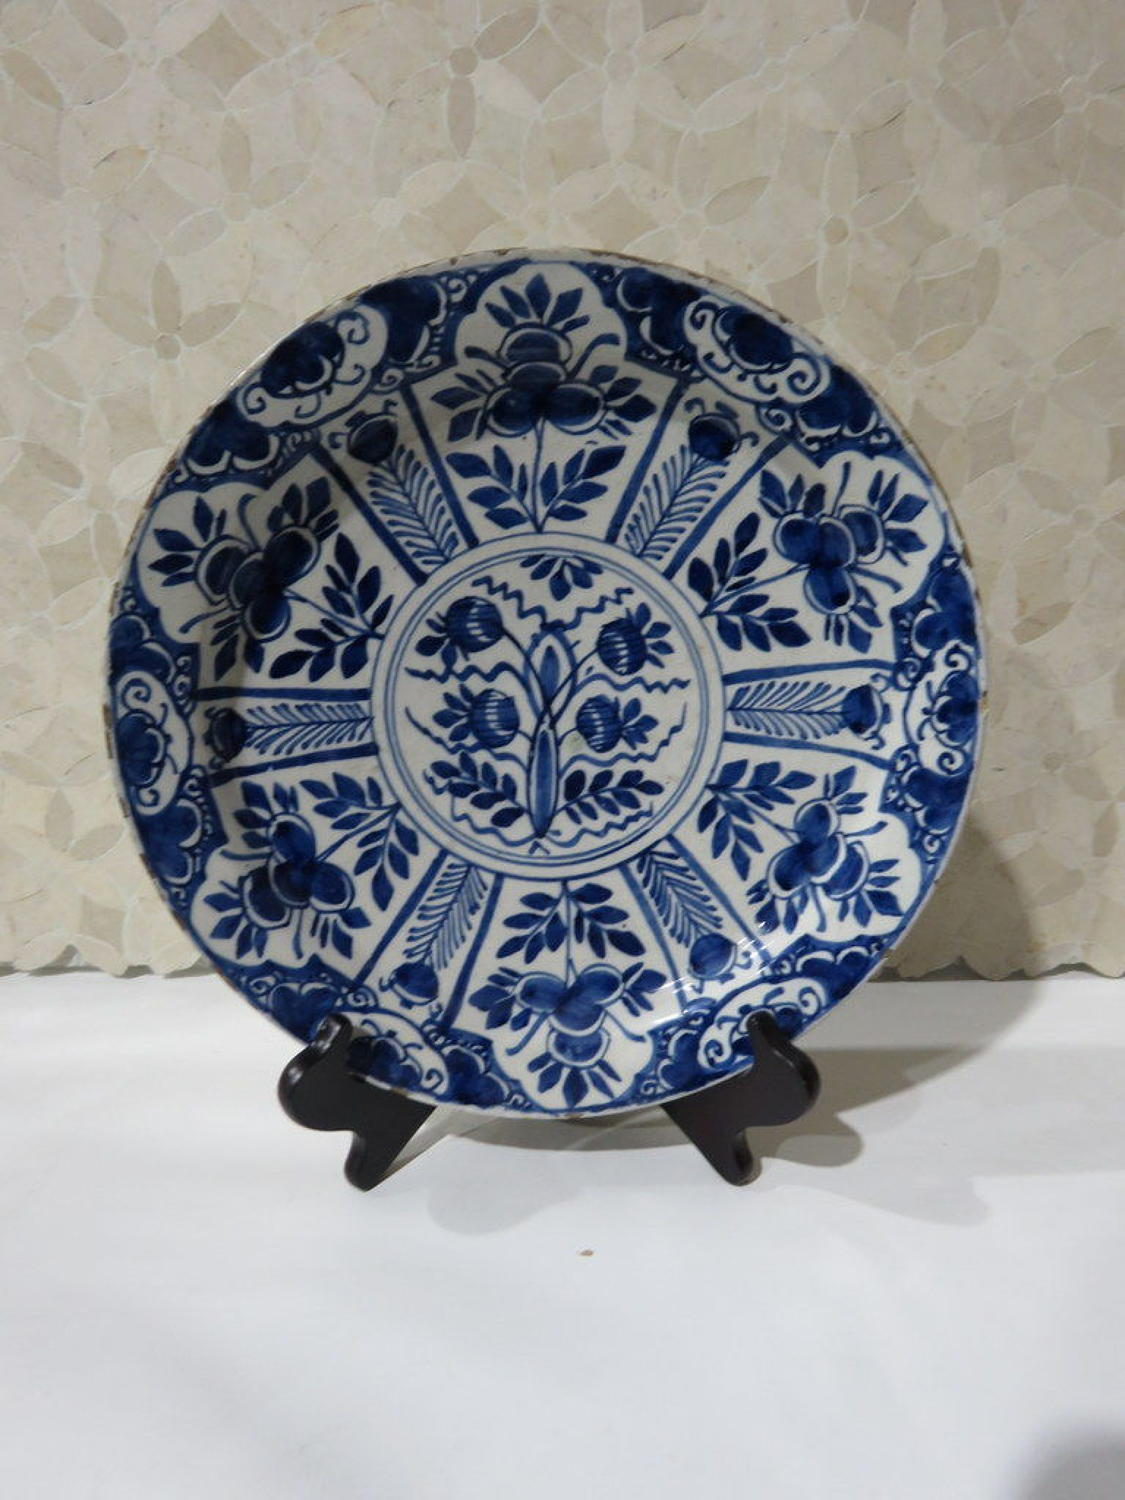 Delft blue & white charger plate, 18thC